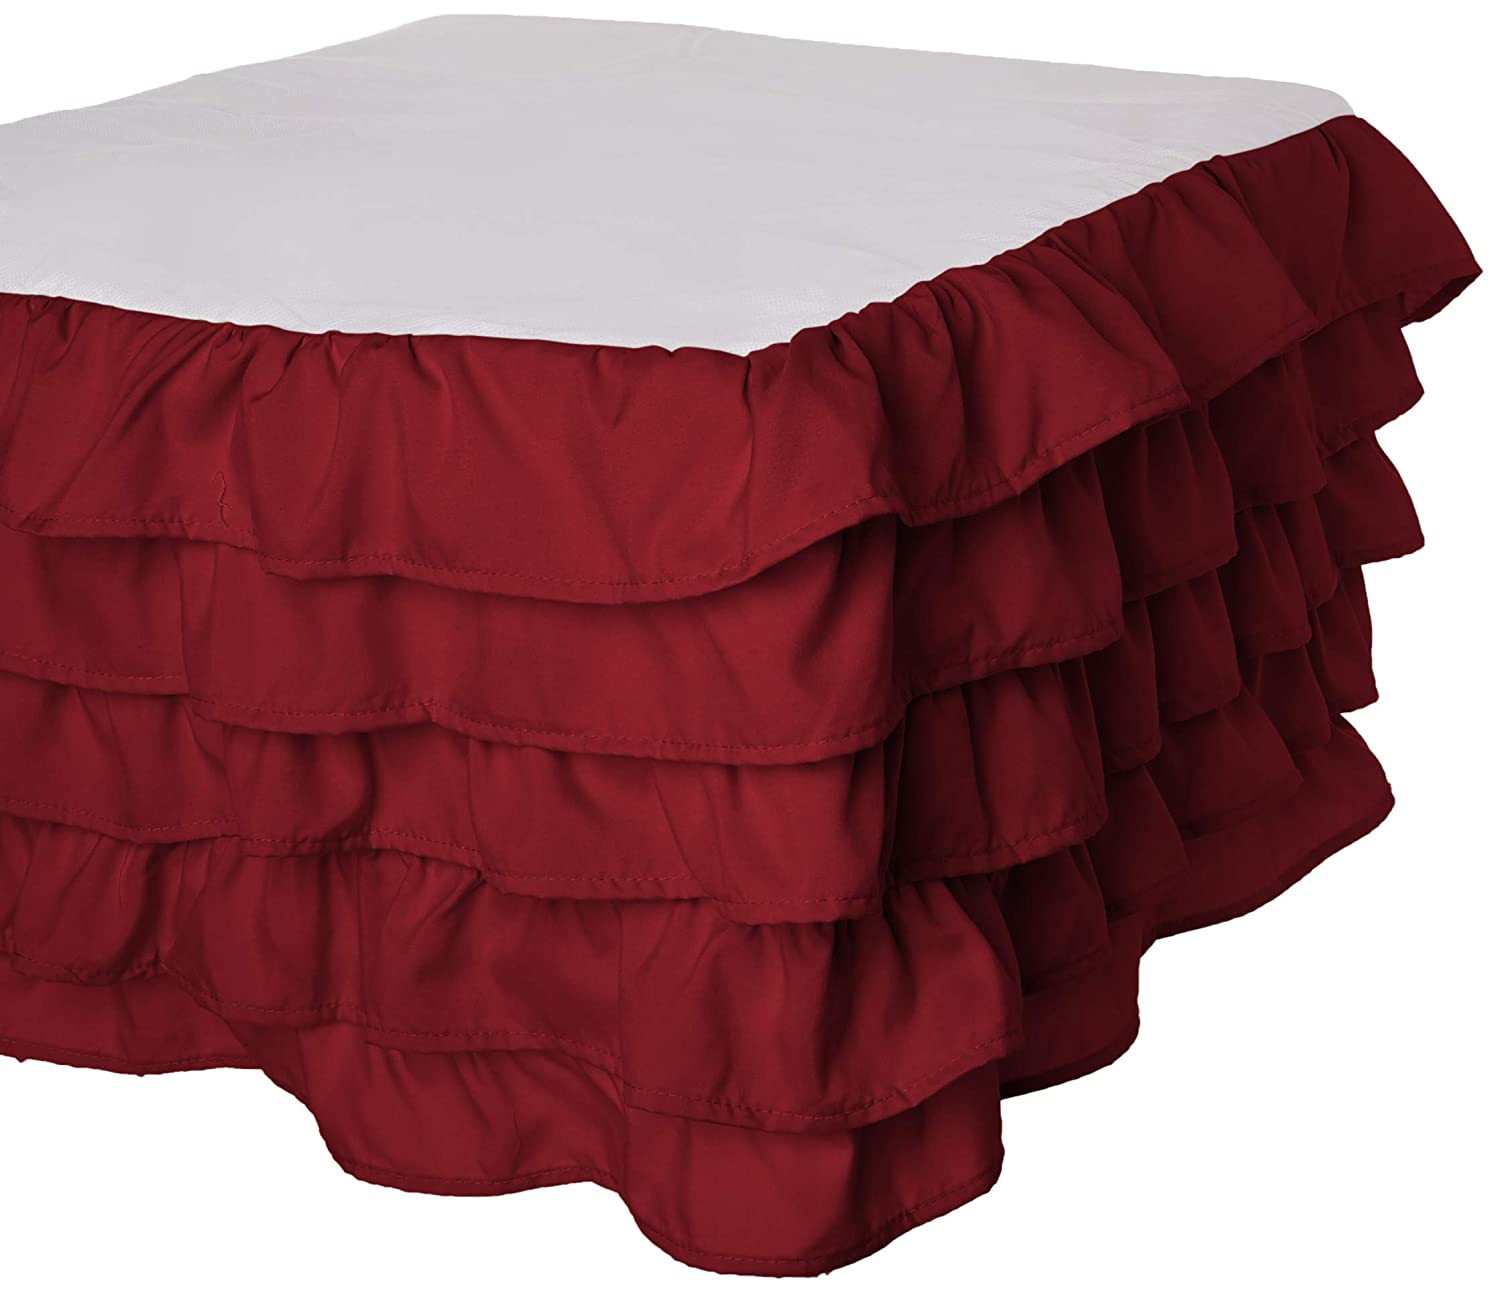 15inch Drop Pink Elegant Comfort Luxurious Premium Quality 1500 Thread Count Wrinkle and Fade Resistant Egyptian Quality Microfiber Multi-Ruffle Bed Skirt Full